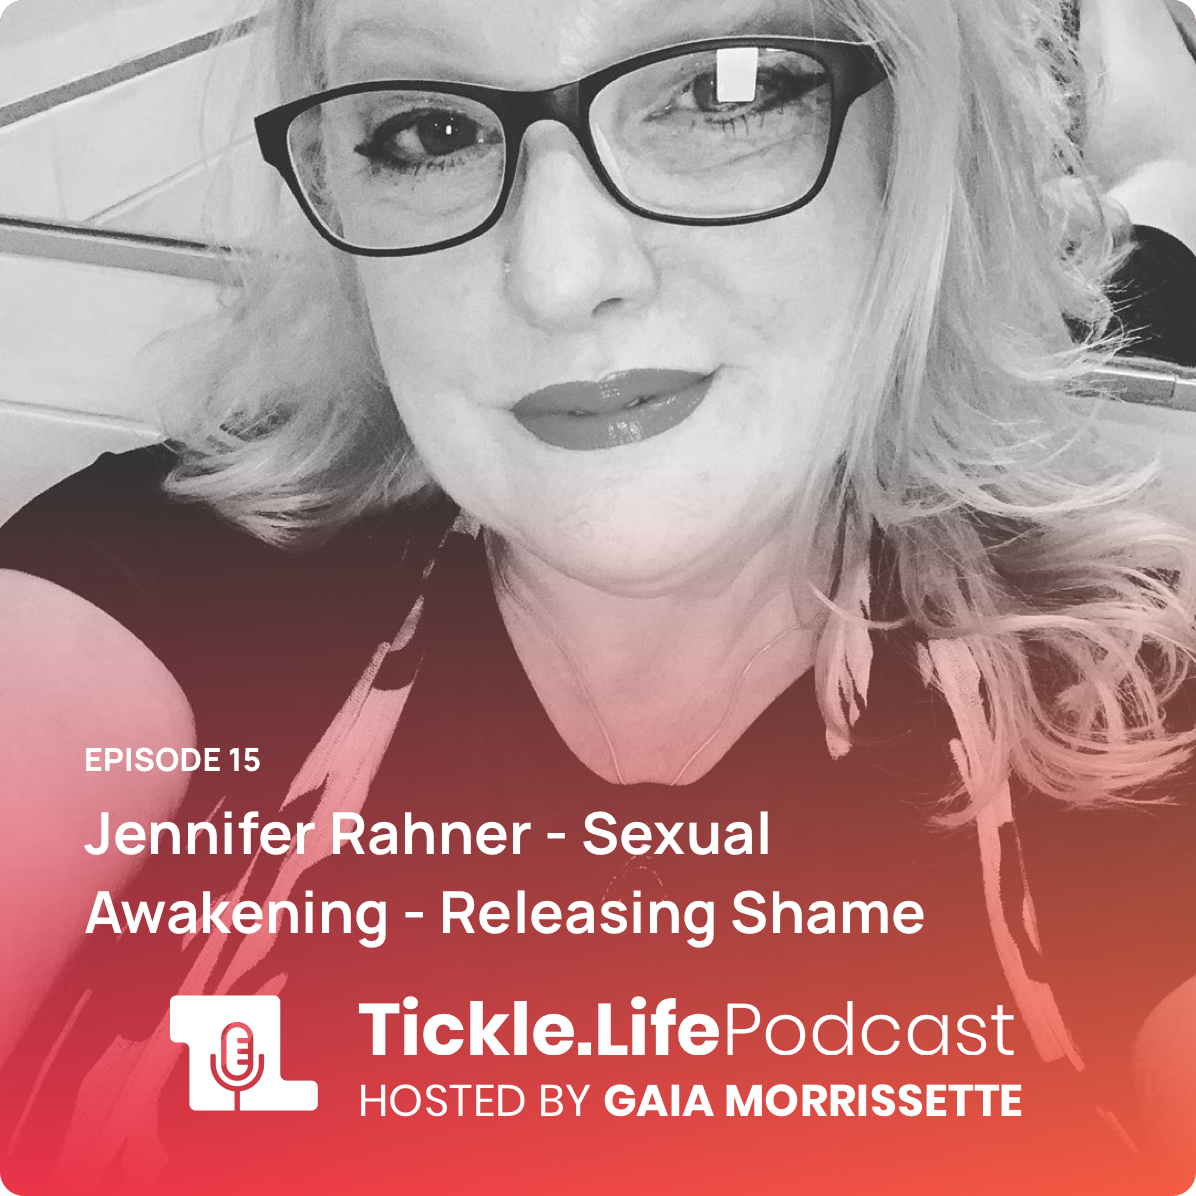 - Jennifer Rahner - Sexual Awakening - Releasing Shame